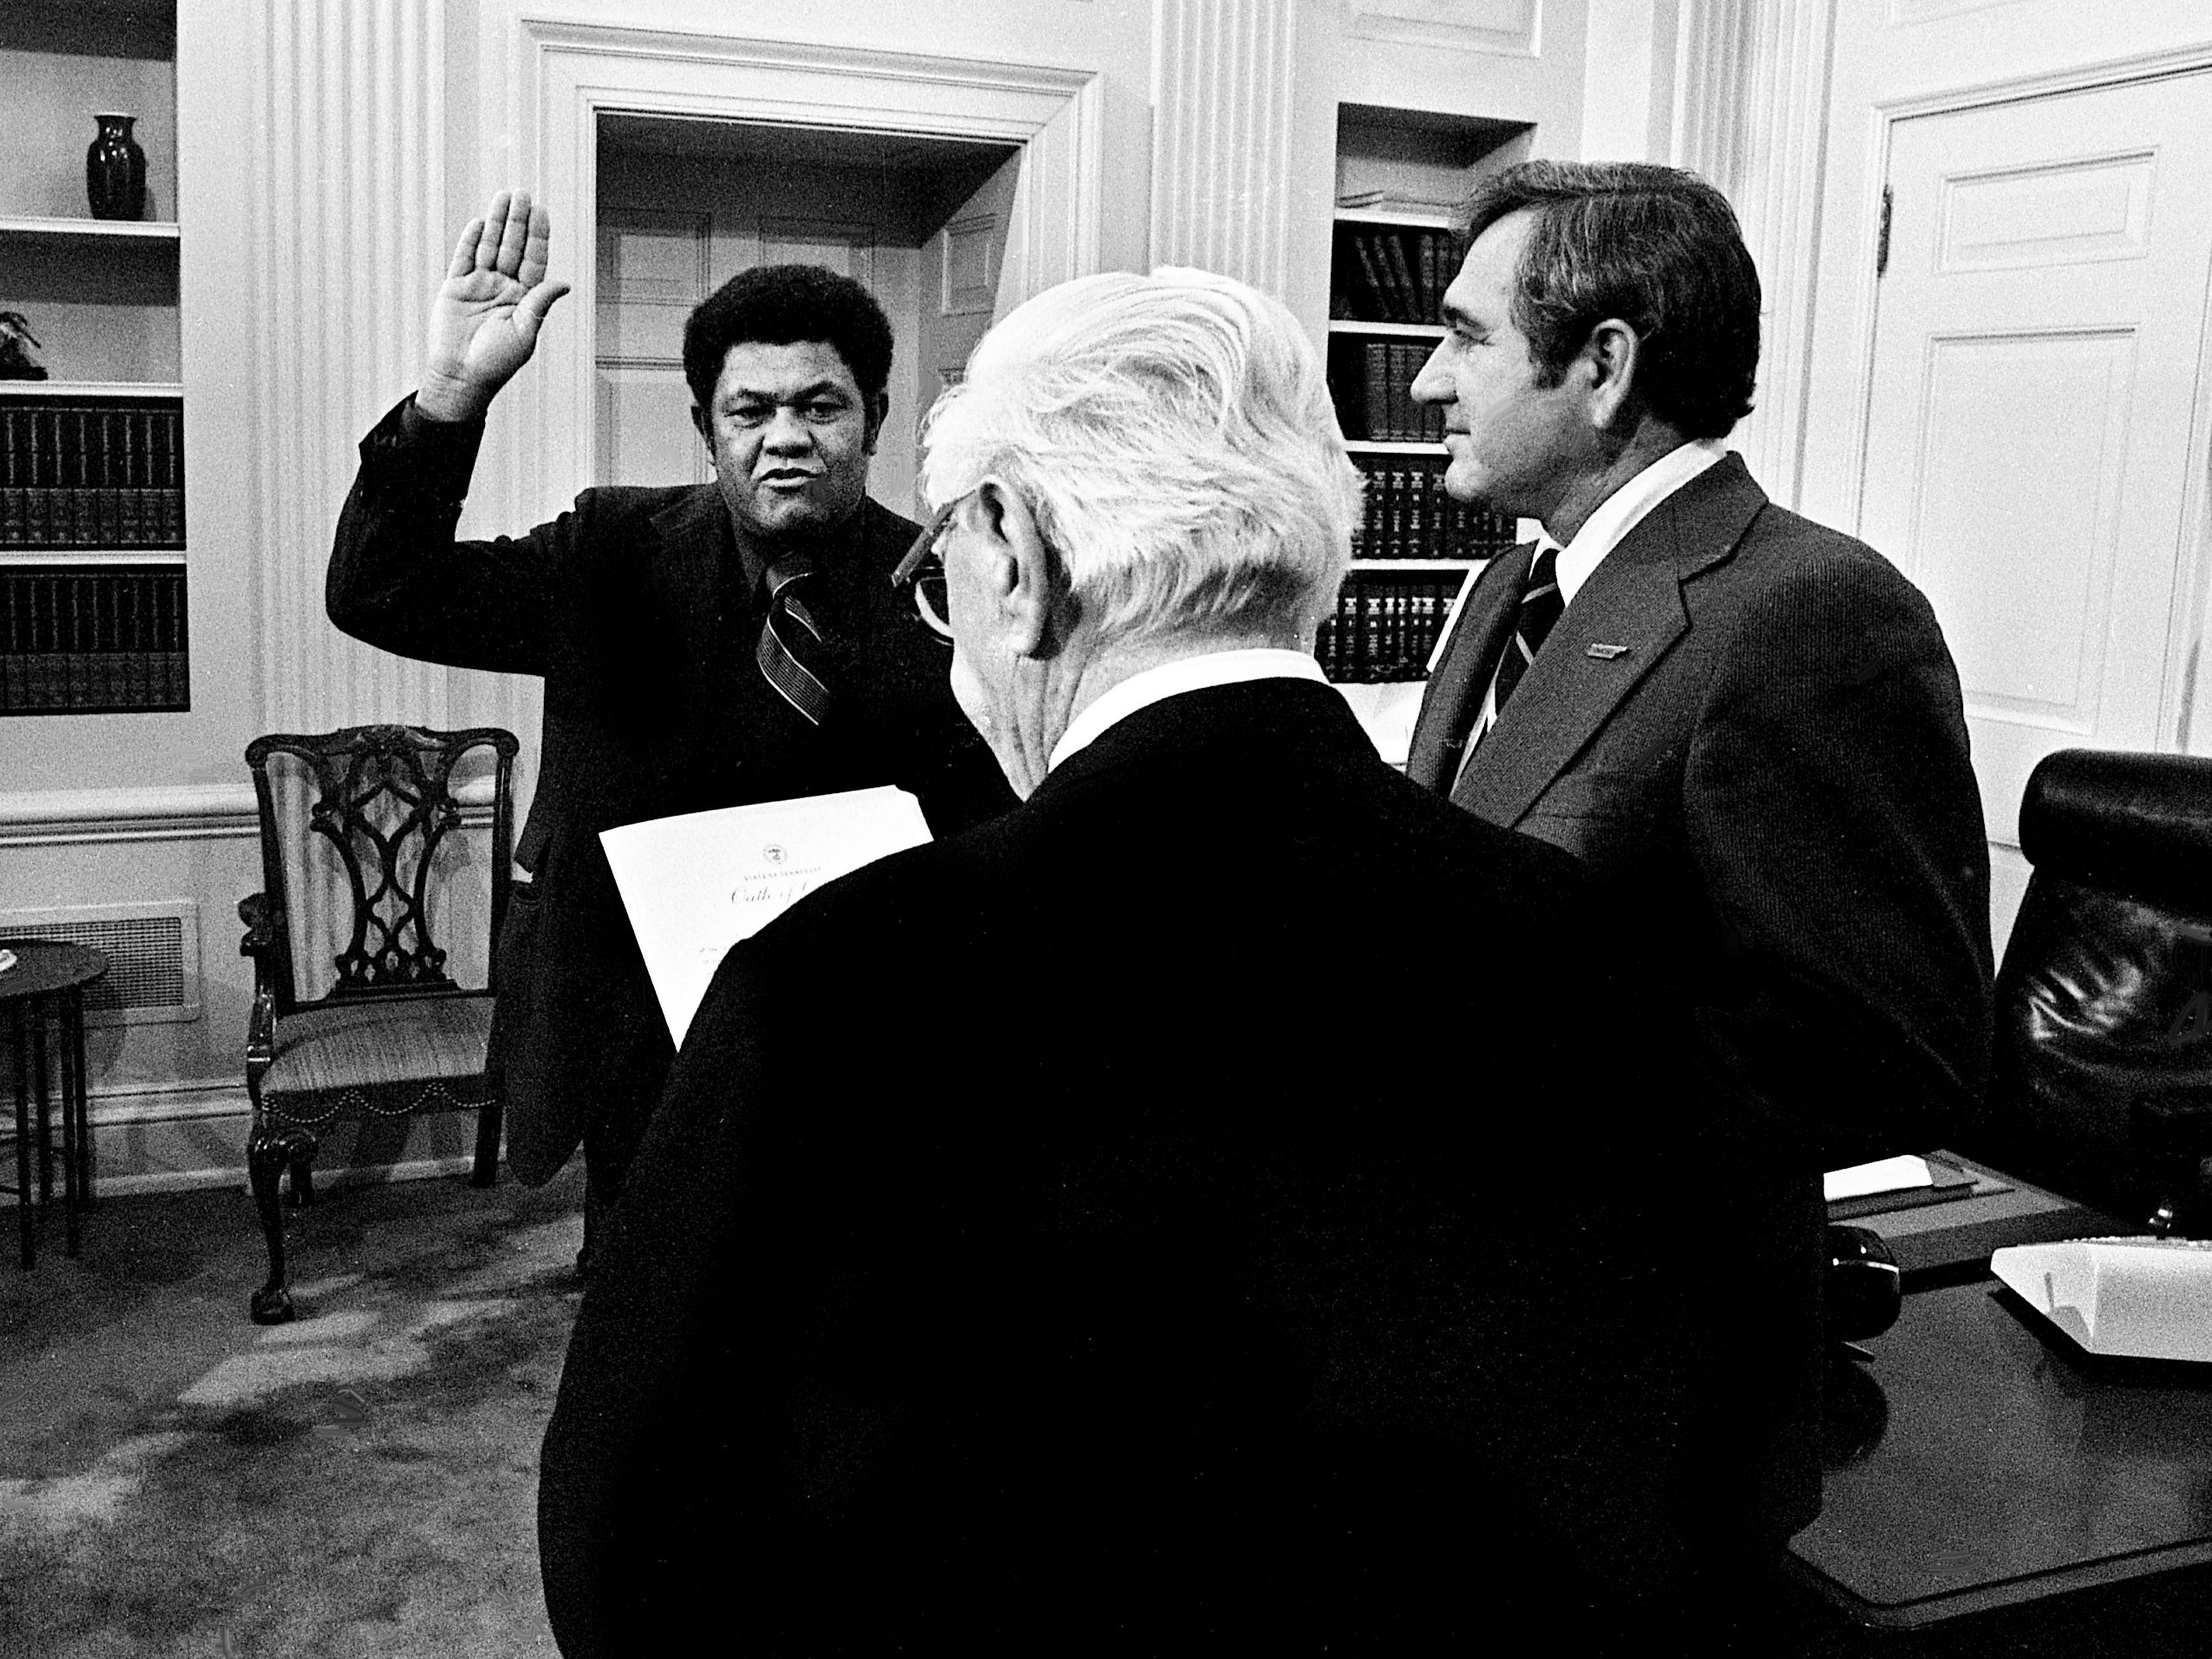 Otis Floyd, left, former state deputy education commissioner, is being sworn in as education commissioner by State Court of Appeals Judge Thomas Shriver with Gov. Ray Blanton looking on in his office at the State Capitol on Jan. 3, 1979. Floyd replaces Sam Ingram, who became president of Middle Tennessee State University. Floyd will serve until Blanton leaves office Jan. 20.